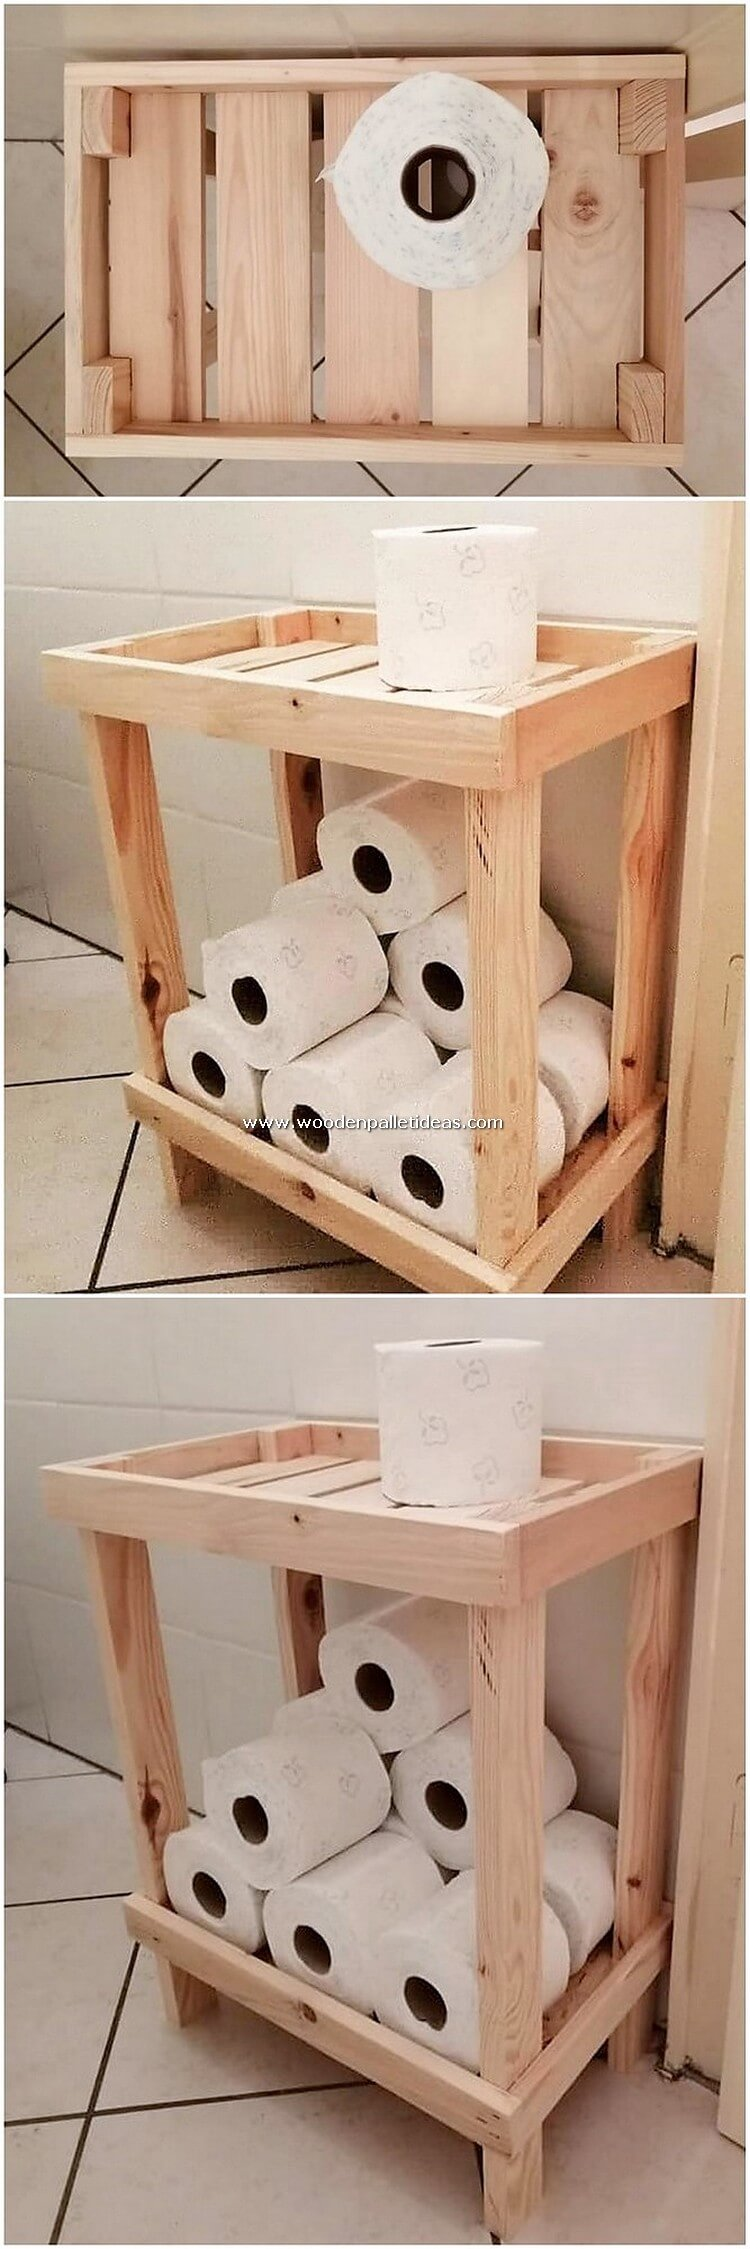 Pallet-Toilet-Paper-Roll-Table